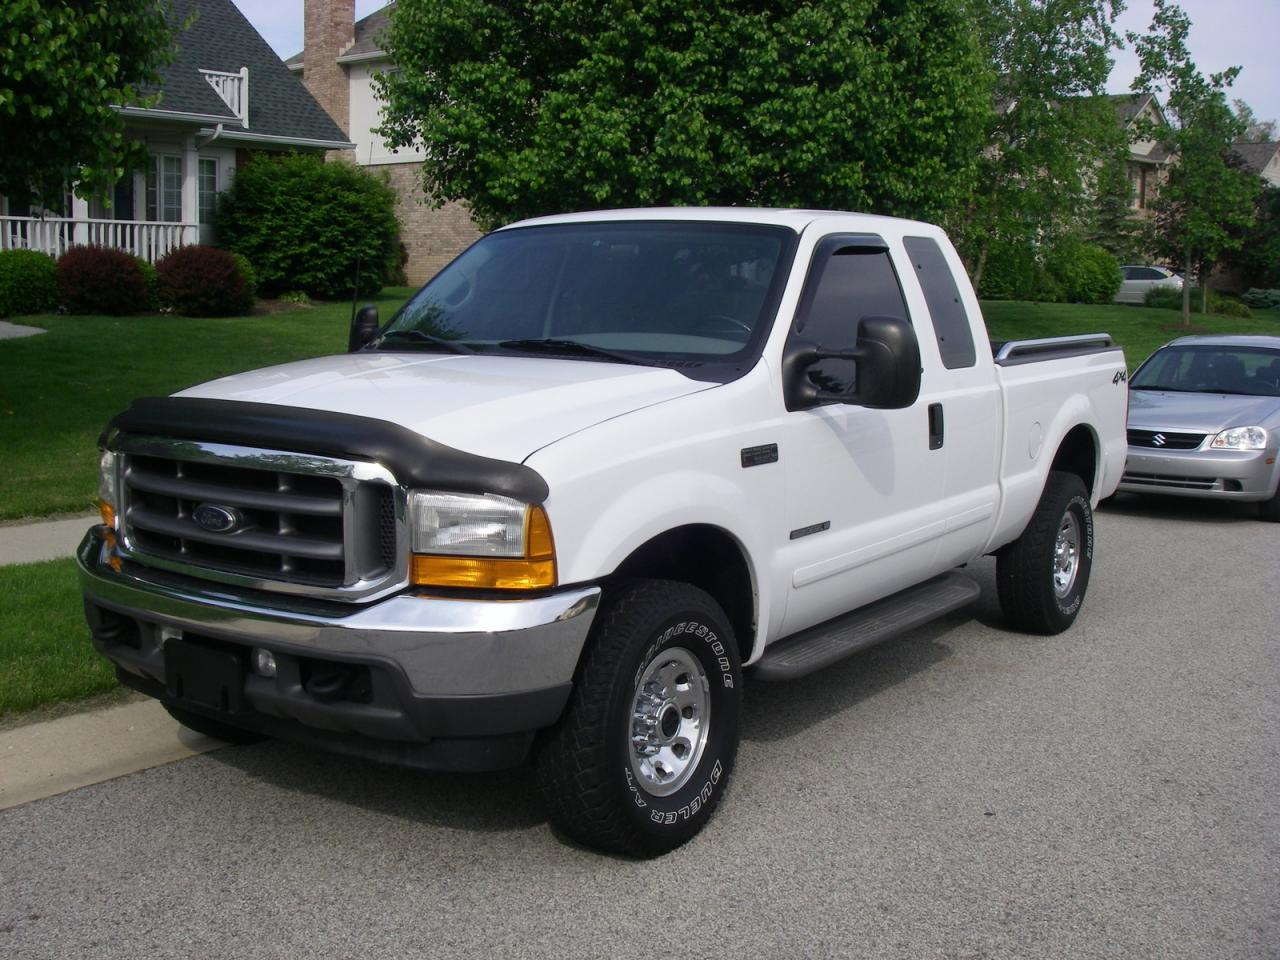 1999 ford f 250 super duty information and photos zombiedrive. Black Bedroom Furniture Sets. Home Design Ideas